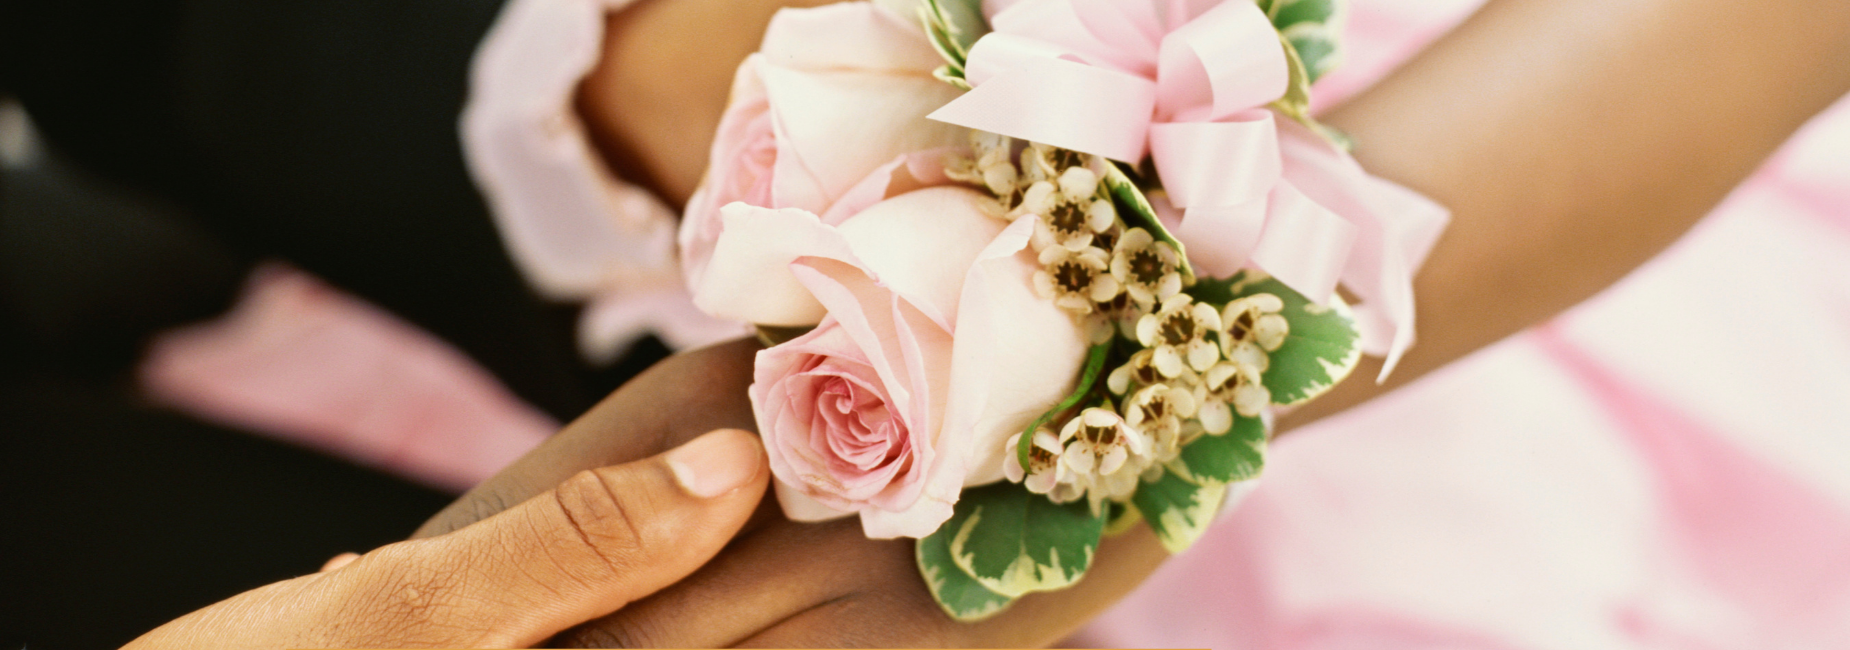 boy an girl hands together with a pink wrist corsage